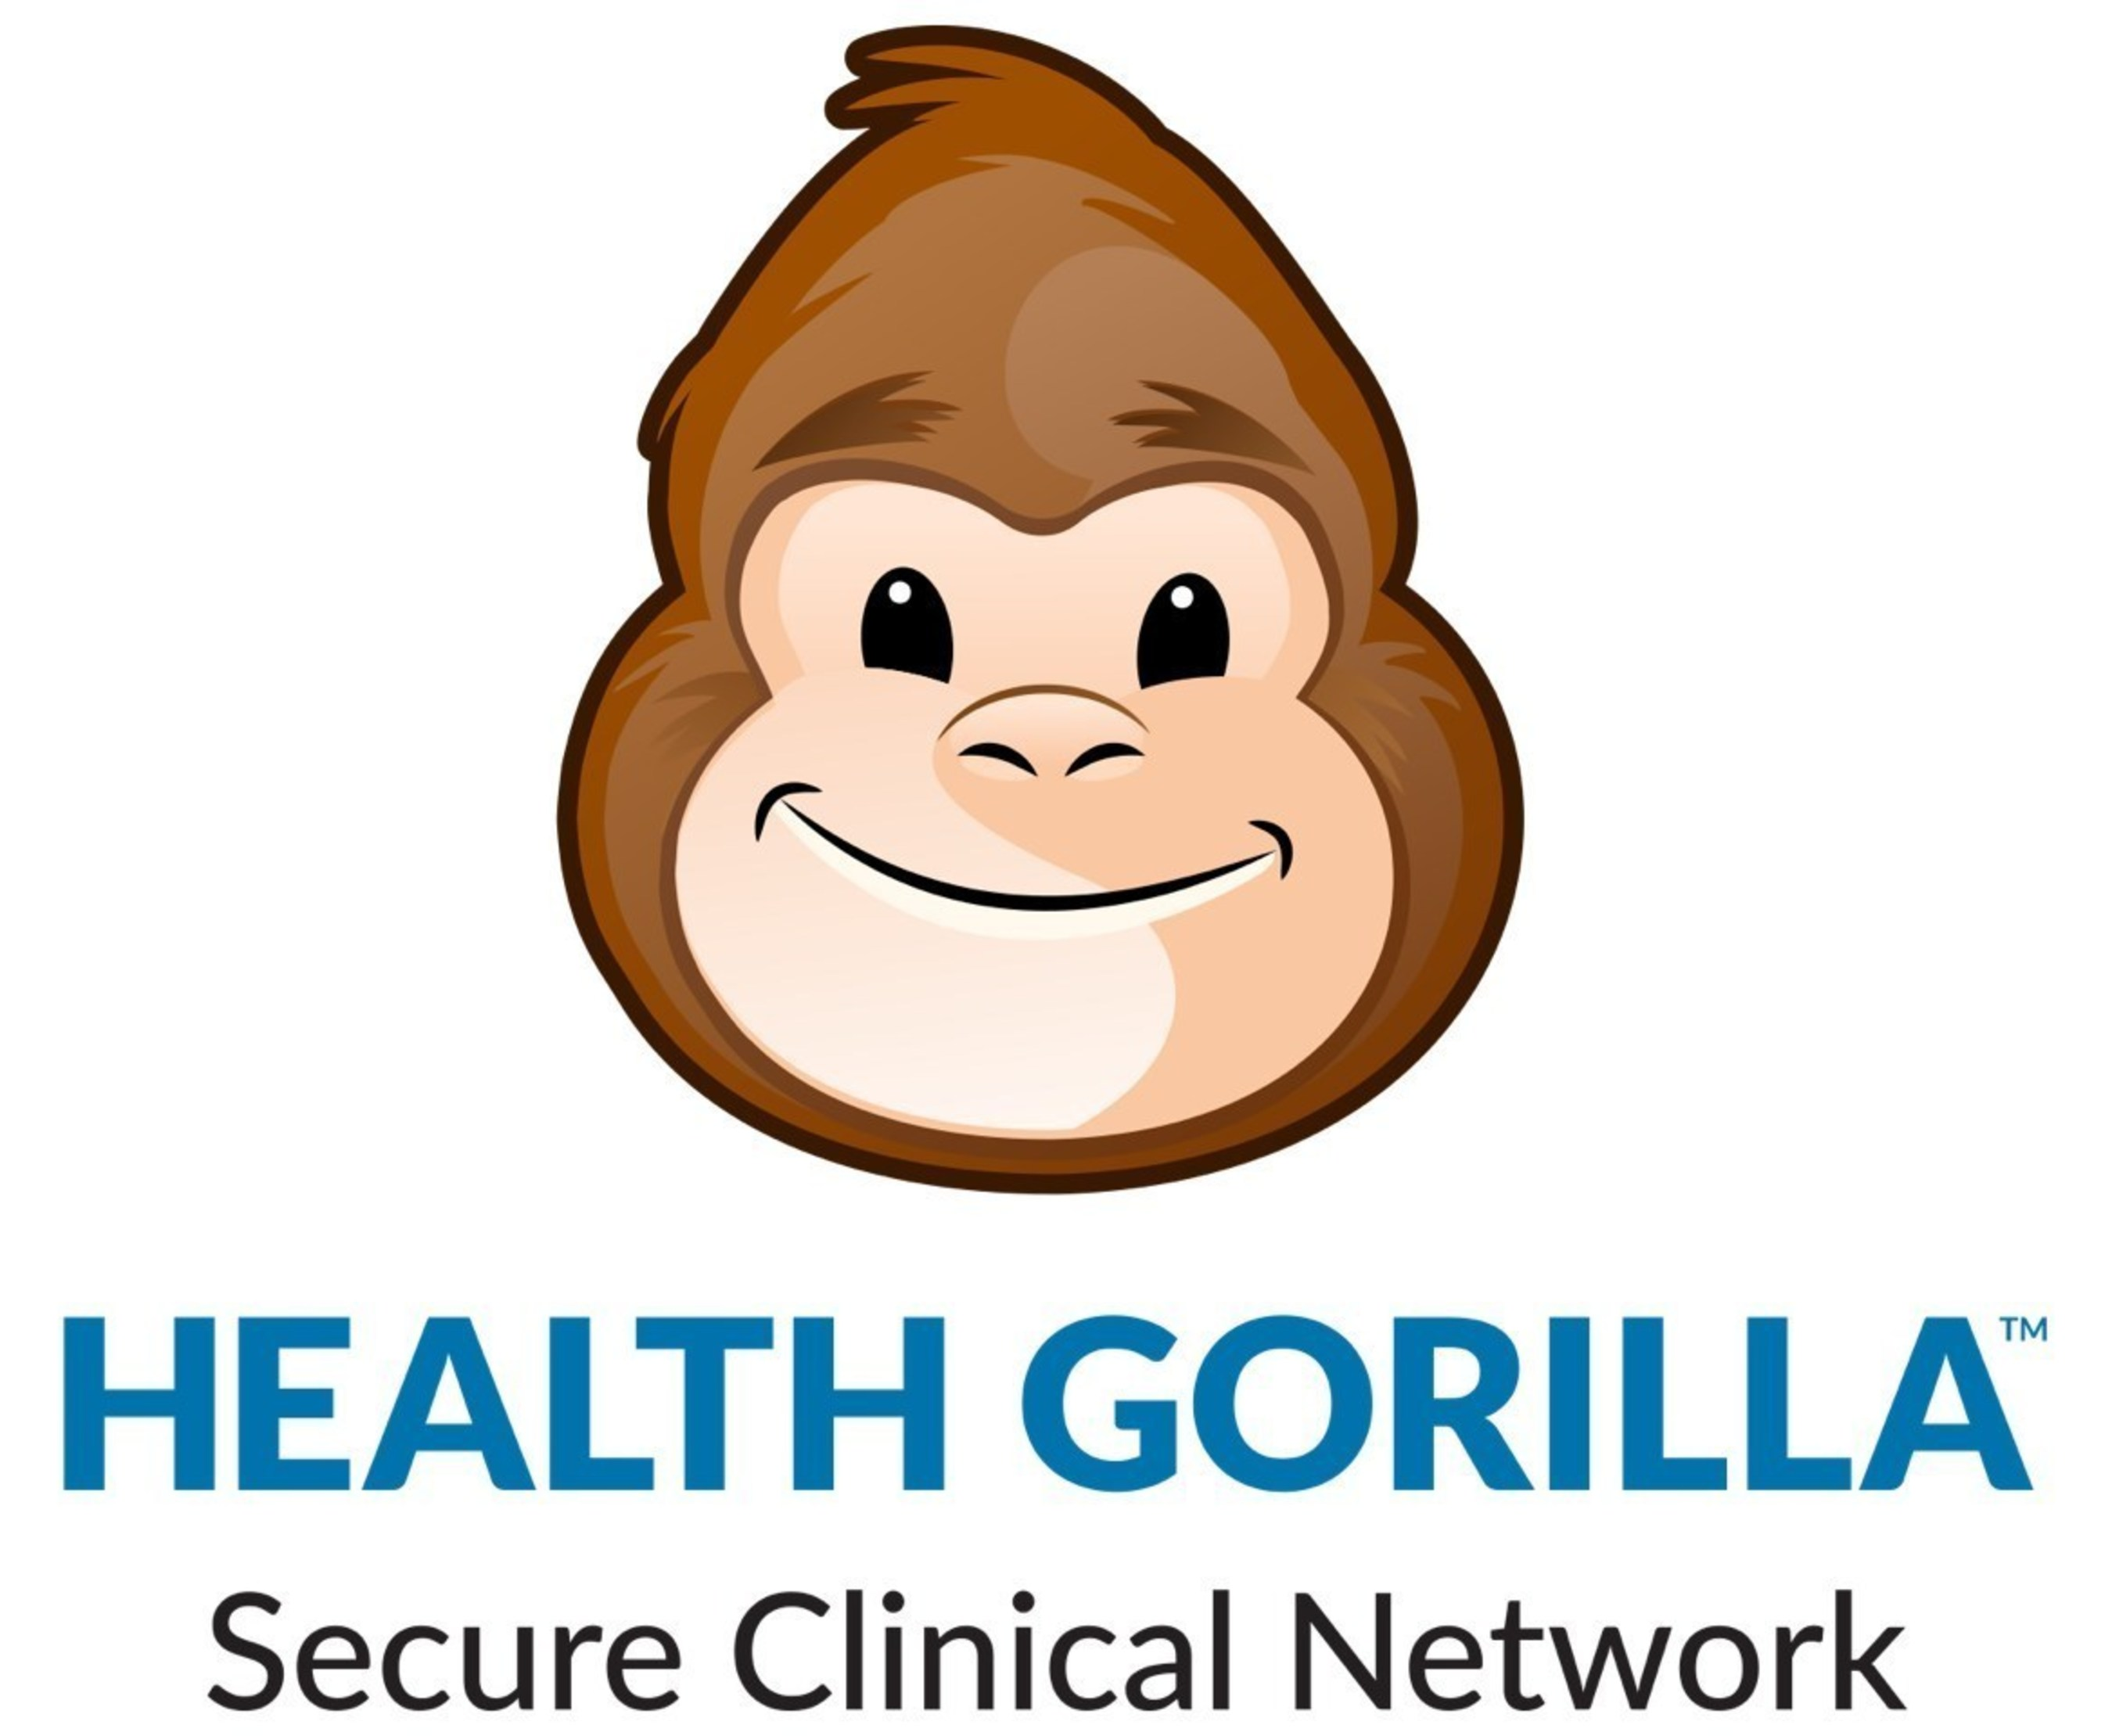 Health Gorilla Announces Agreement with Scripps Health to Enable Seamless, HIPAA-Compliant